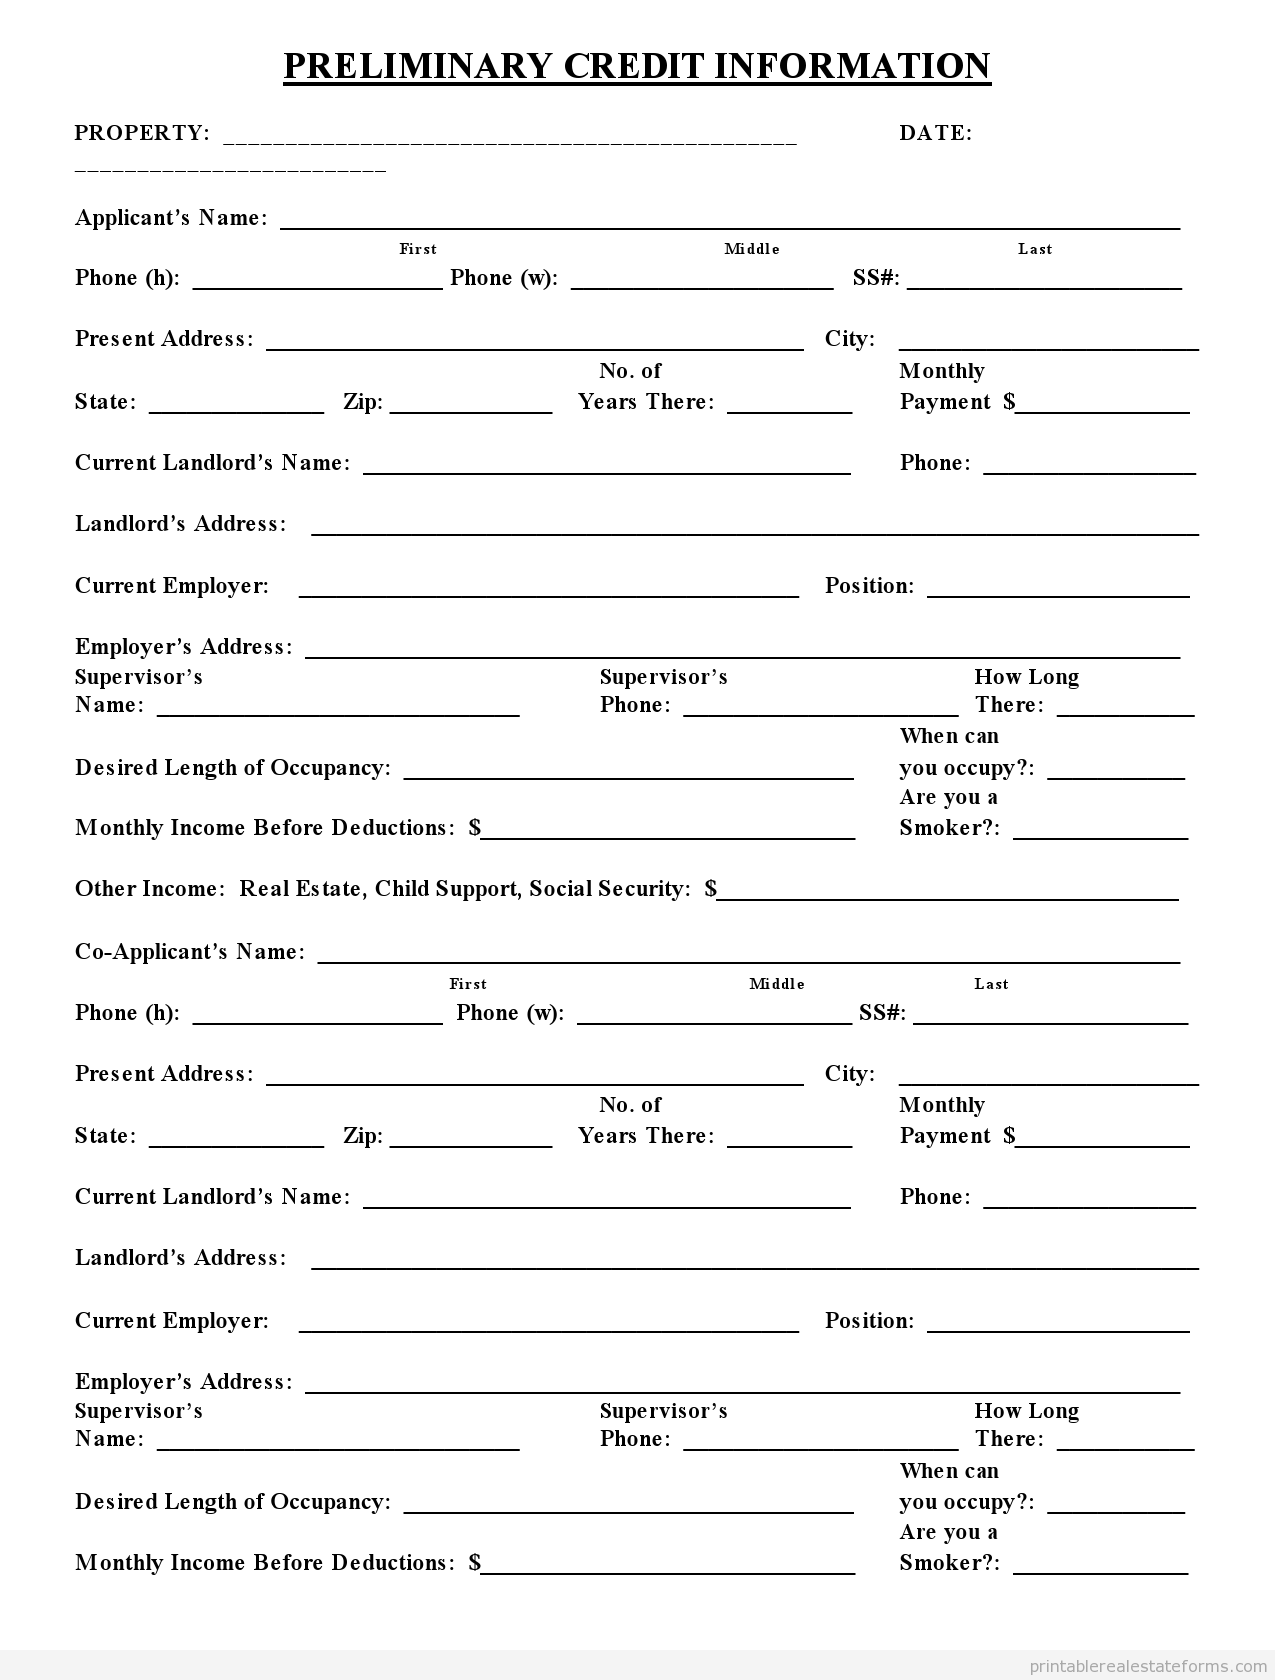 sample printable preliminary credit application form printable sample printable preliminary credit application form